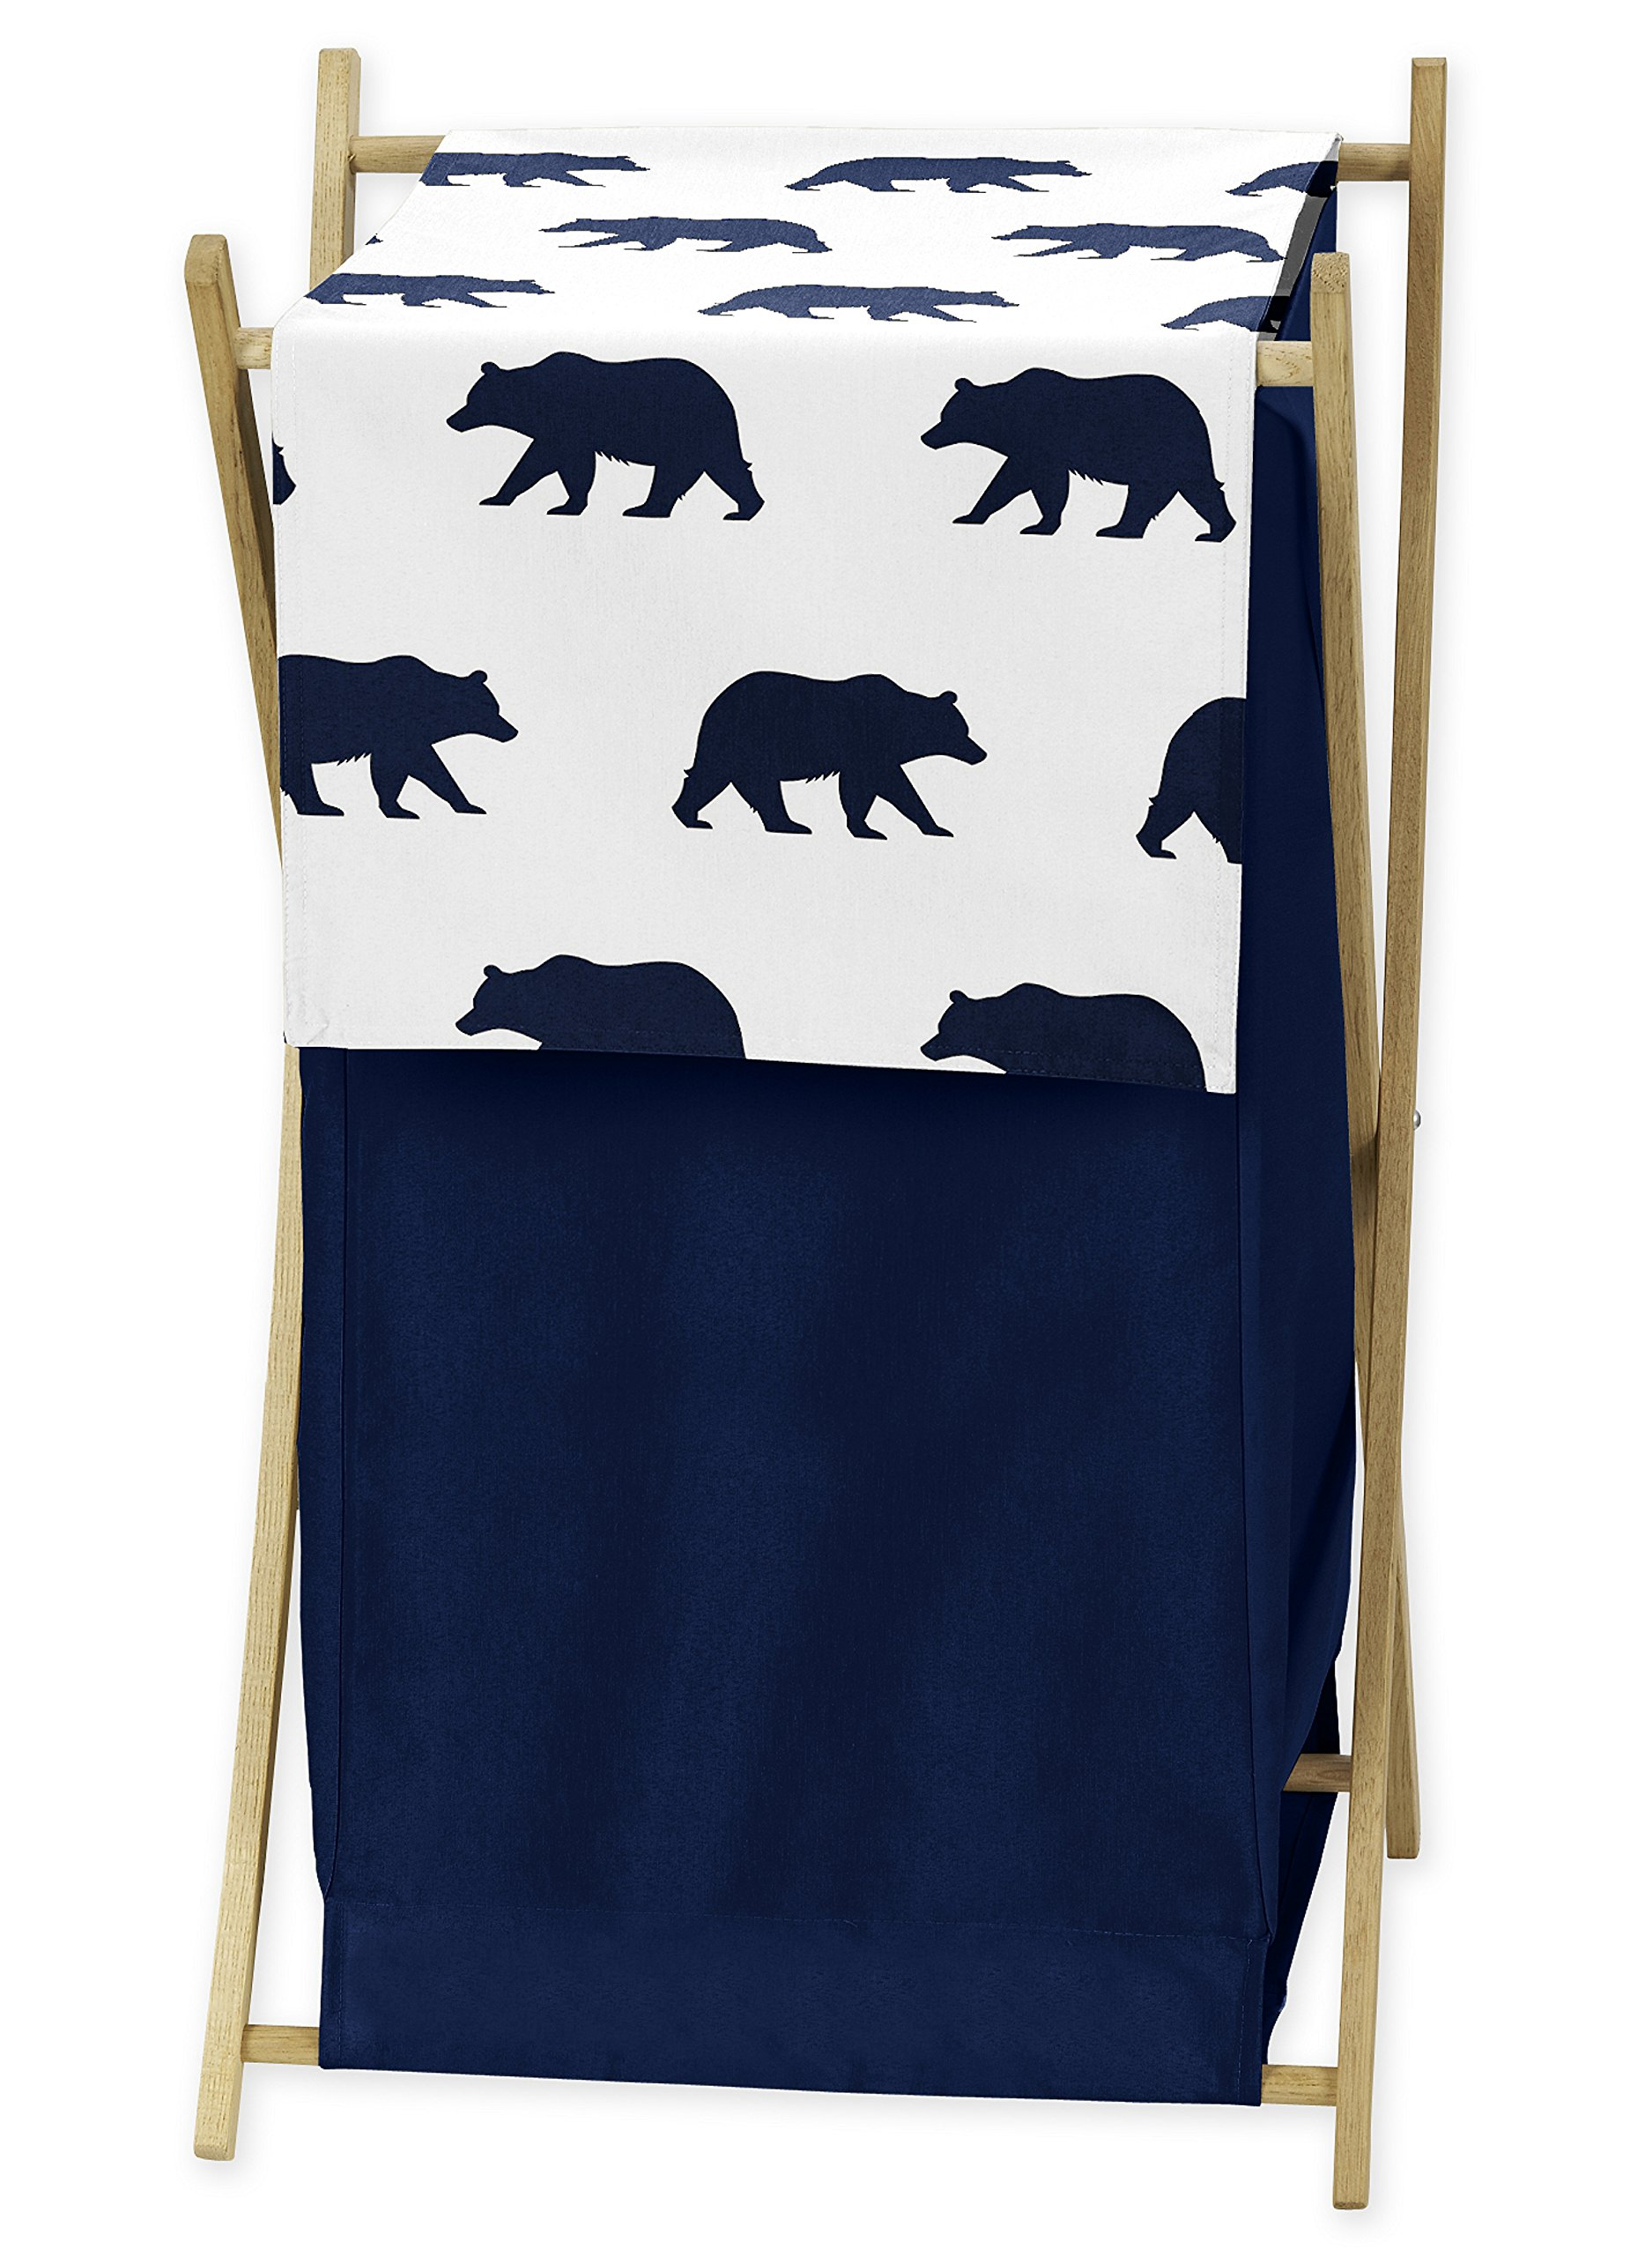 Sweet Jojo Designs Navy Blue and White Baby Kid Clothes Laundry Hamper for Big Bear Collection by by Sweet Jojo Designs